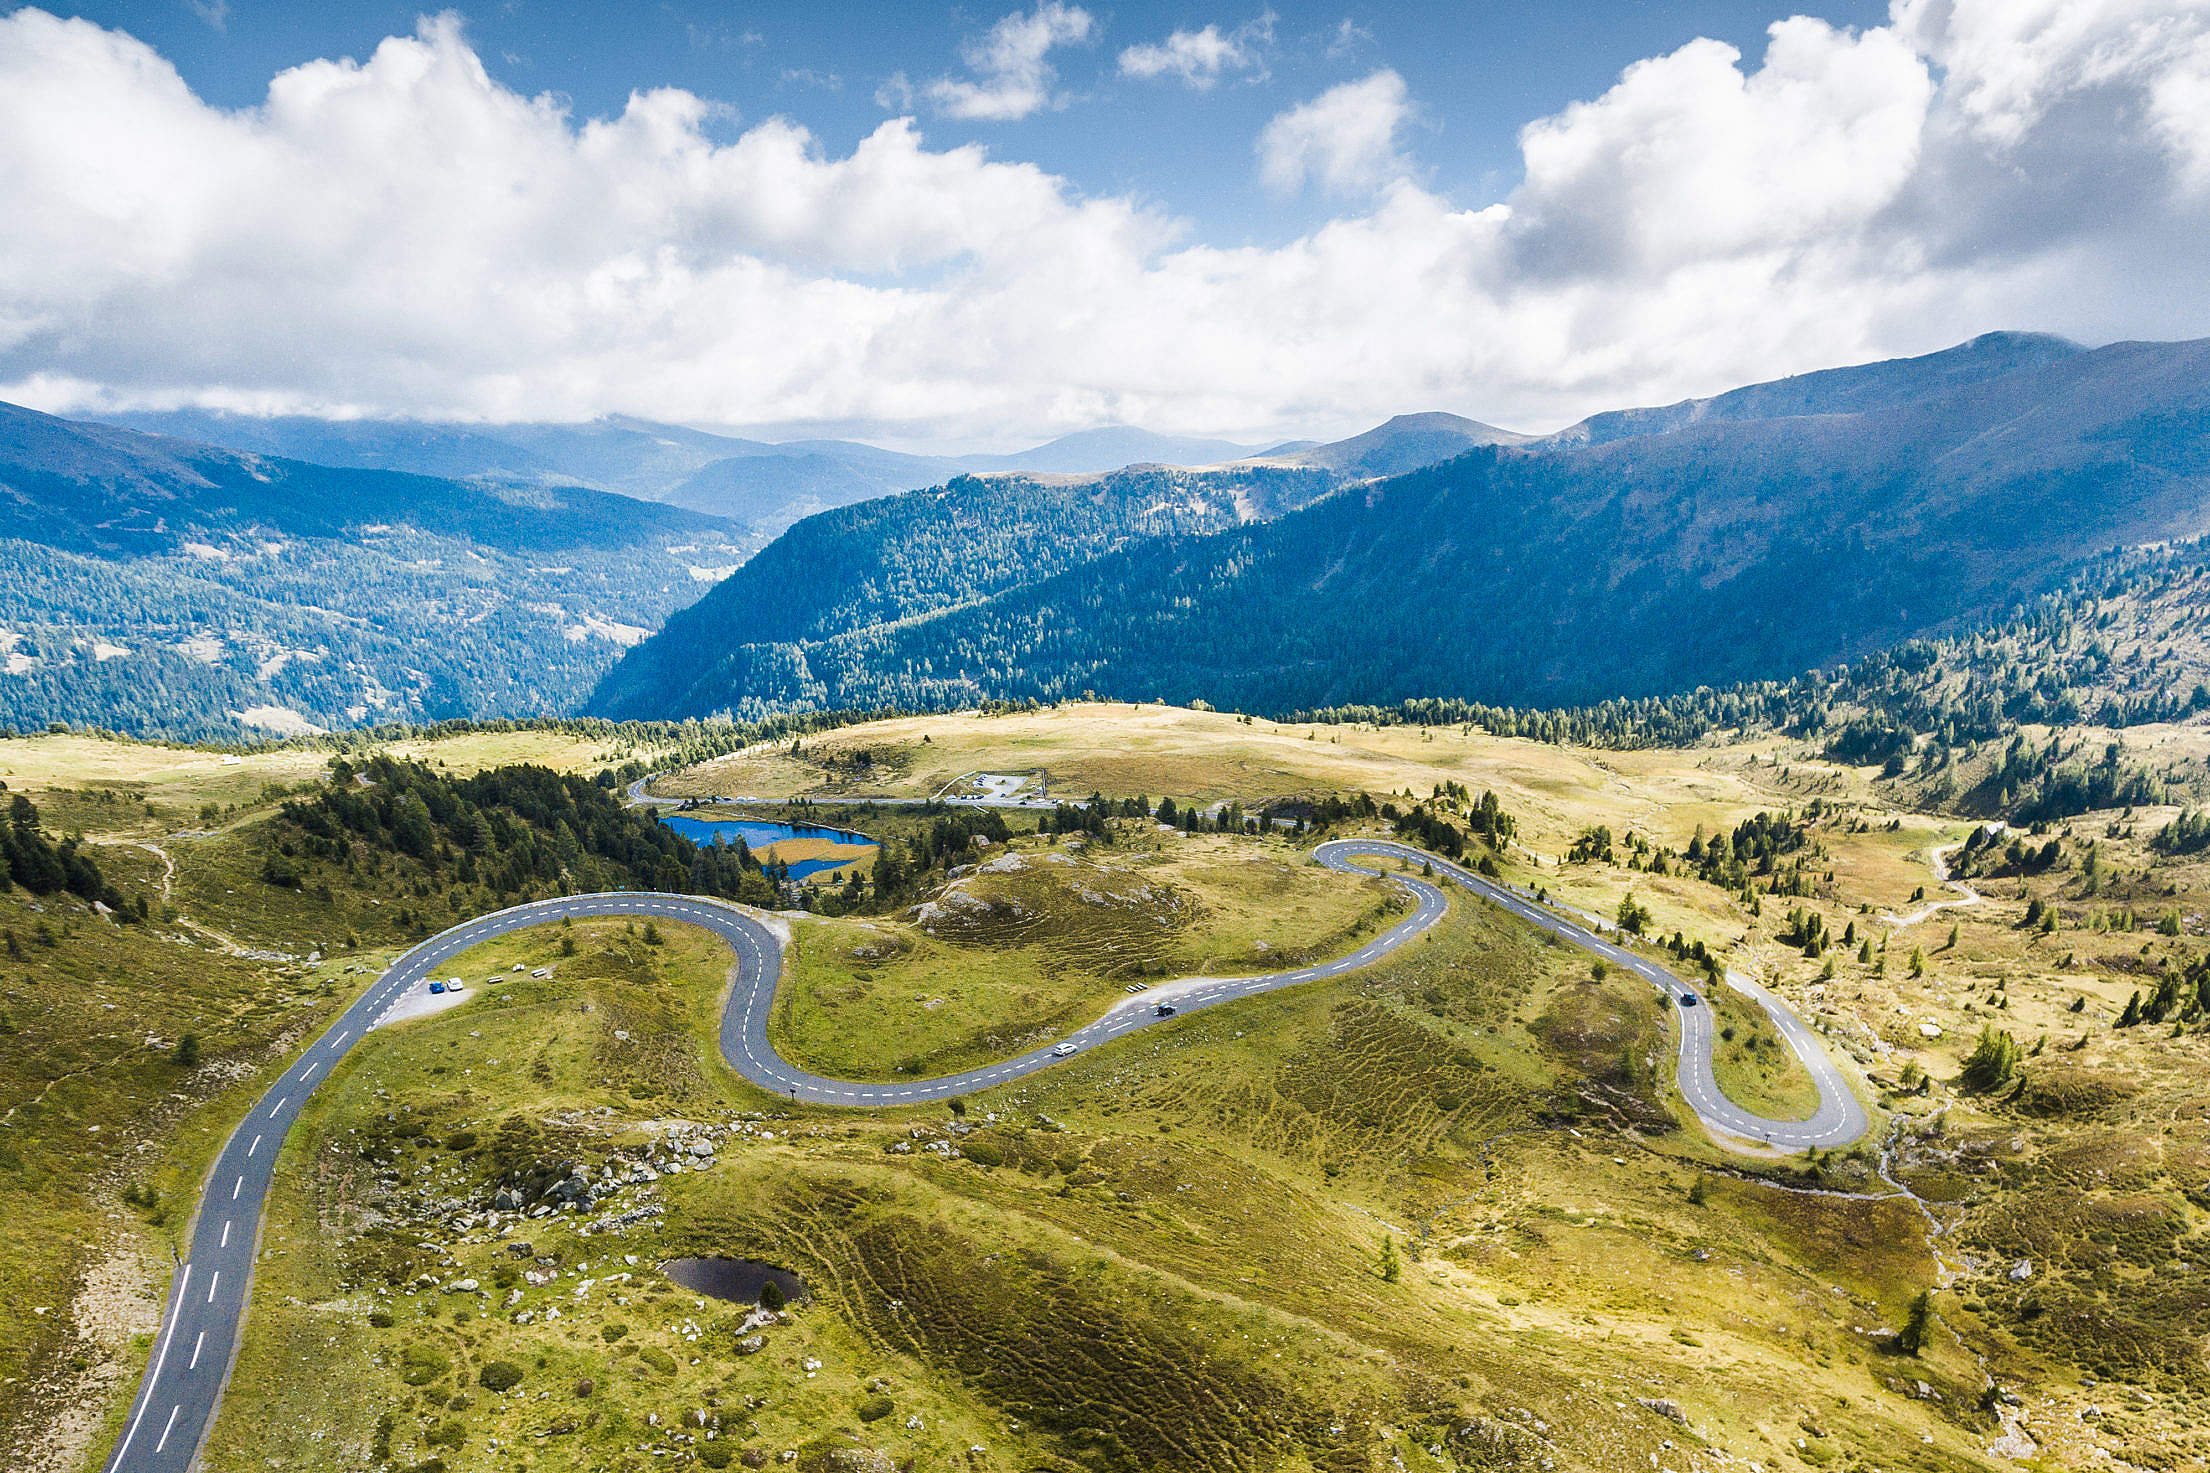 Curvy Alpine Road from Above Free Stock Photo